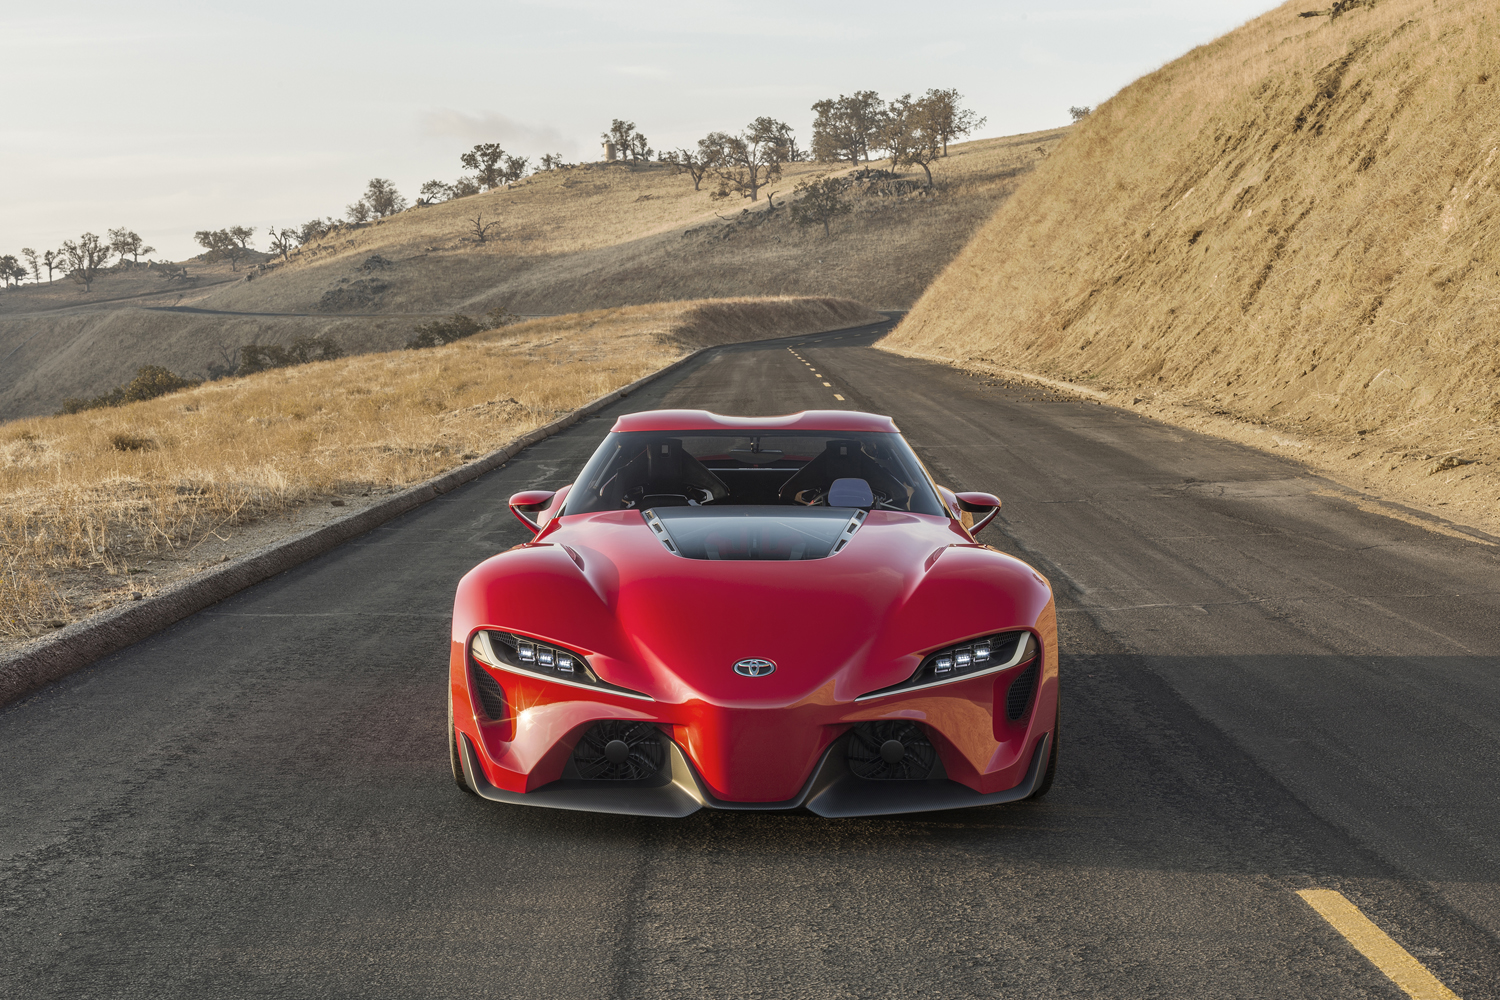 2019 Toyota Supra News Specs Performance Pictures Launch Date Digital Trends